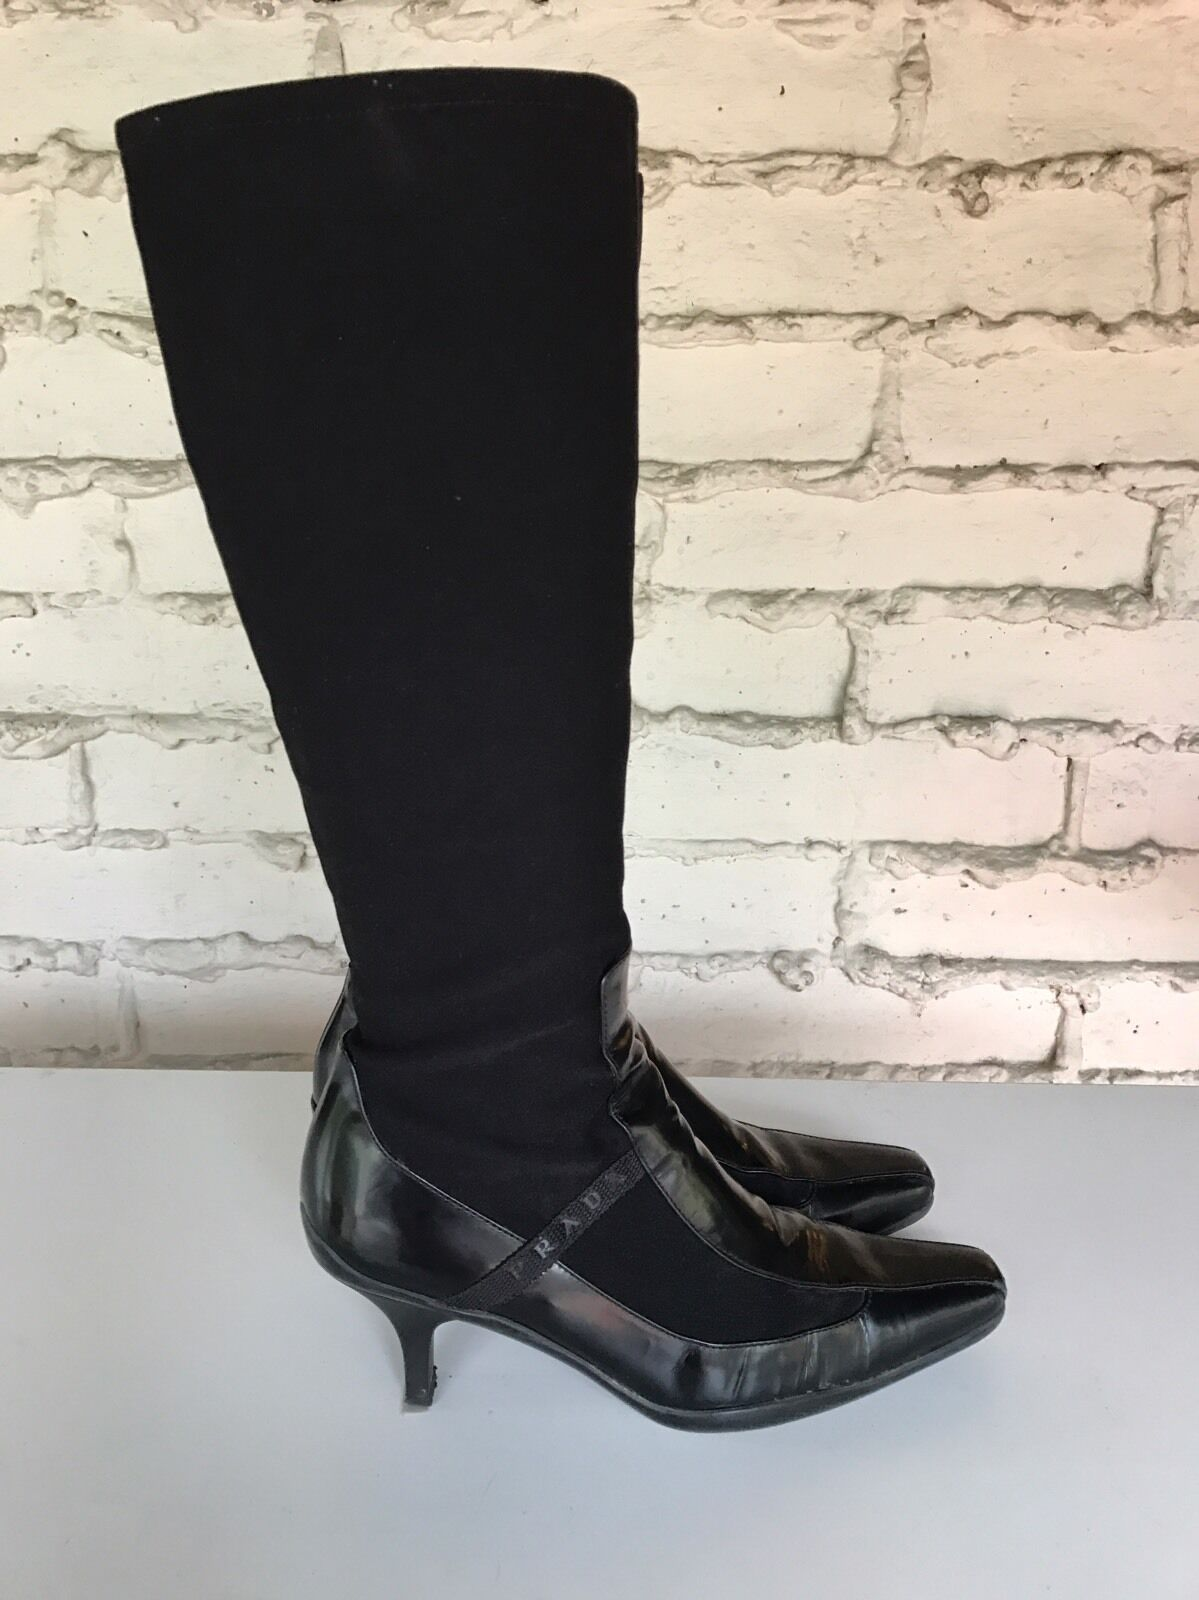 PRADA US 7 BLACK LEATHER AND CANVAS KNEE HIGH BOOTS